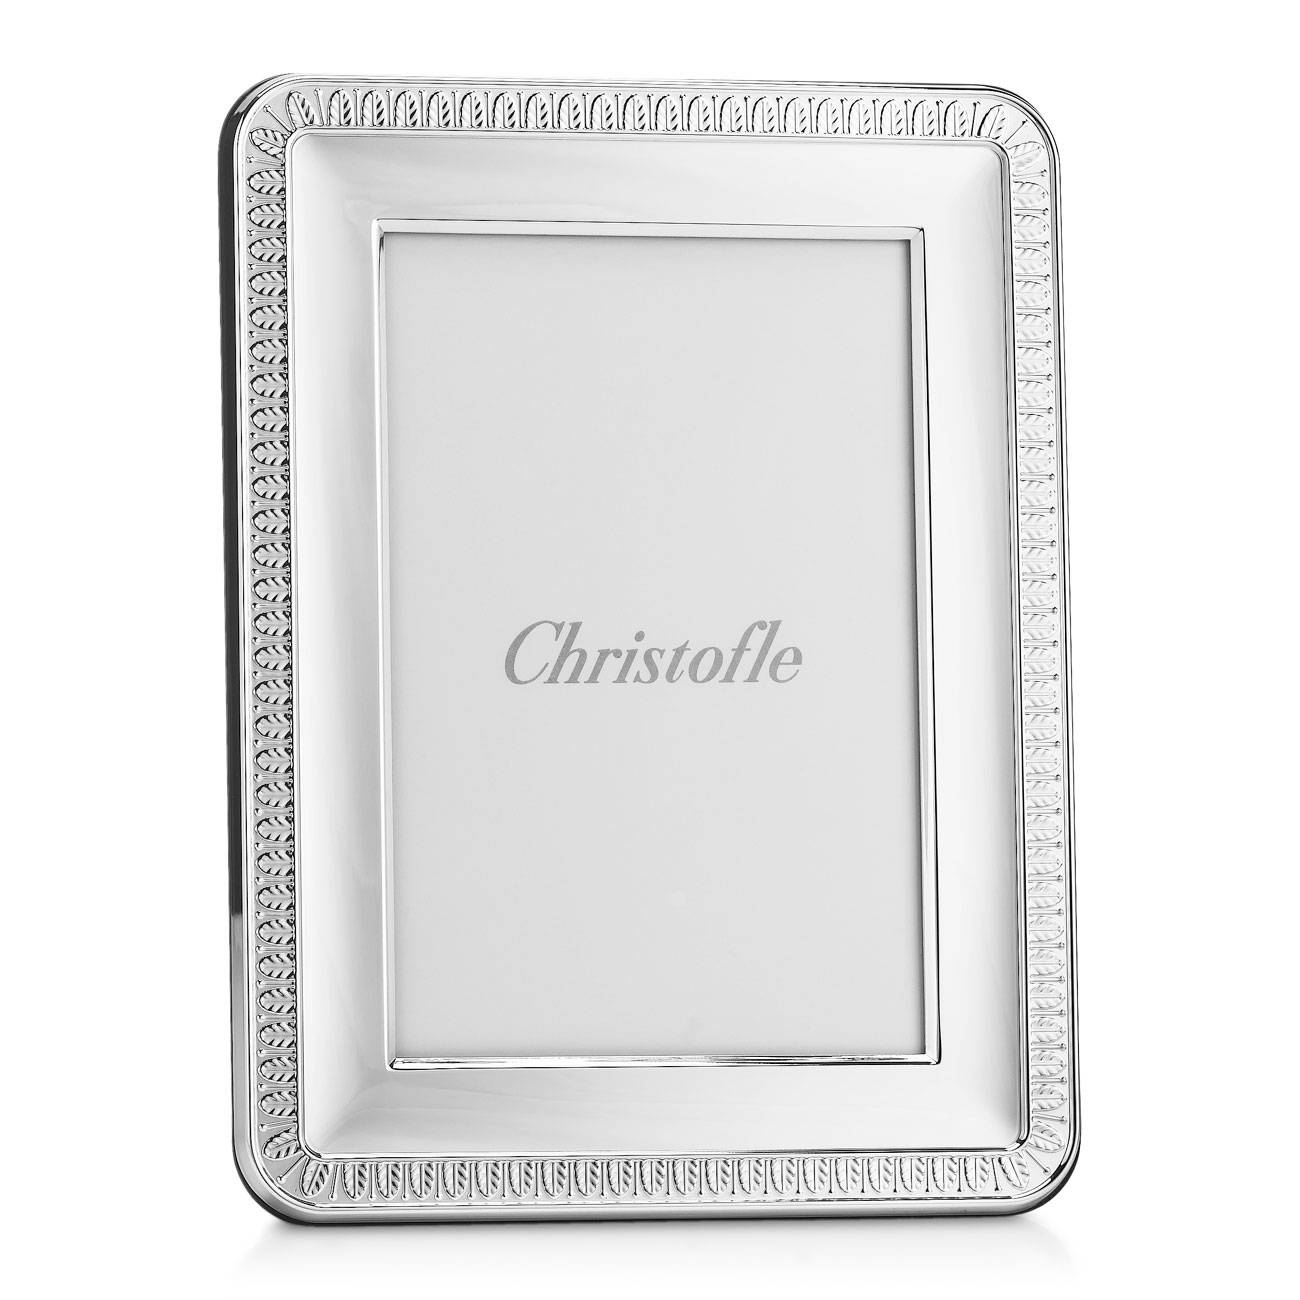 Christofle Malmaison Silver Plated Frame, 4-Inch-By-6-Inch